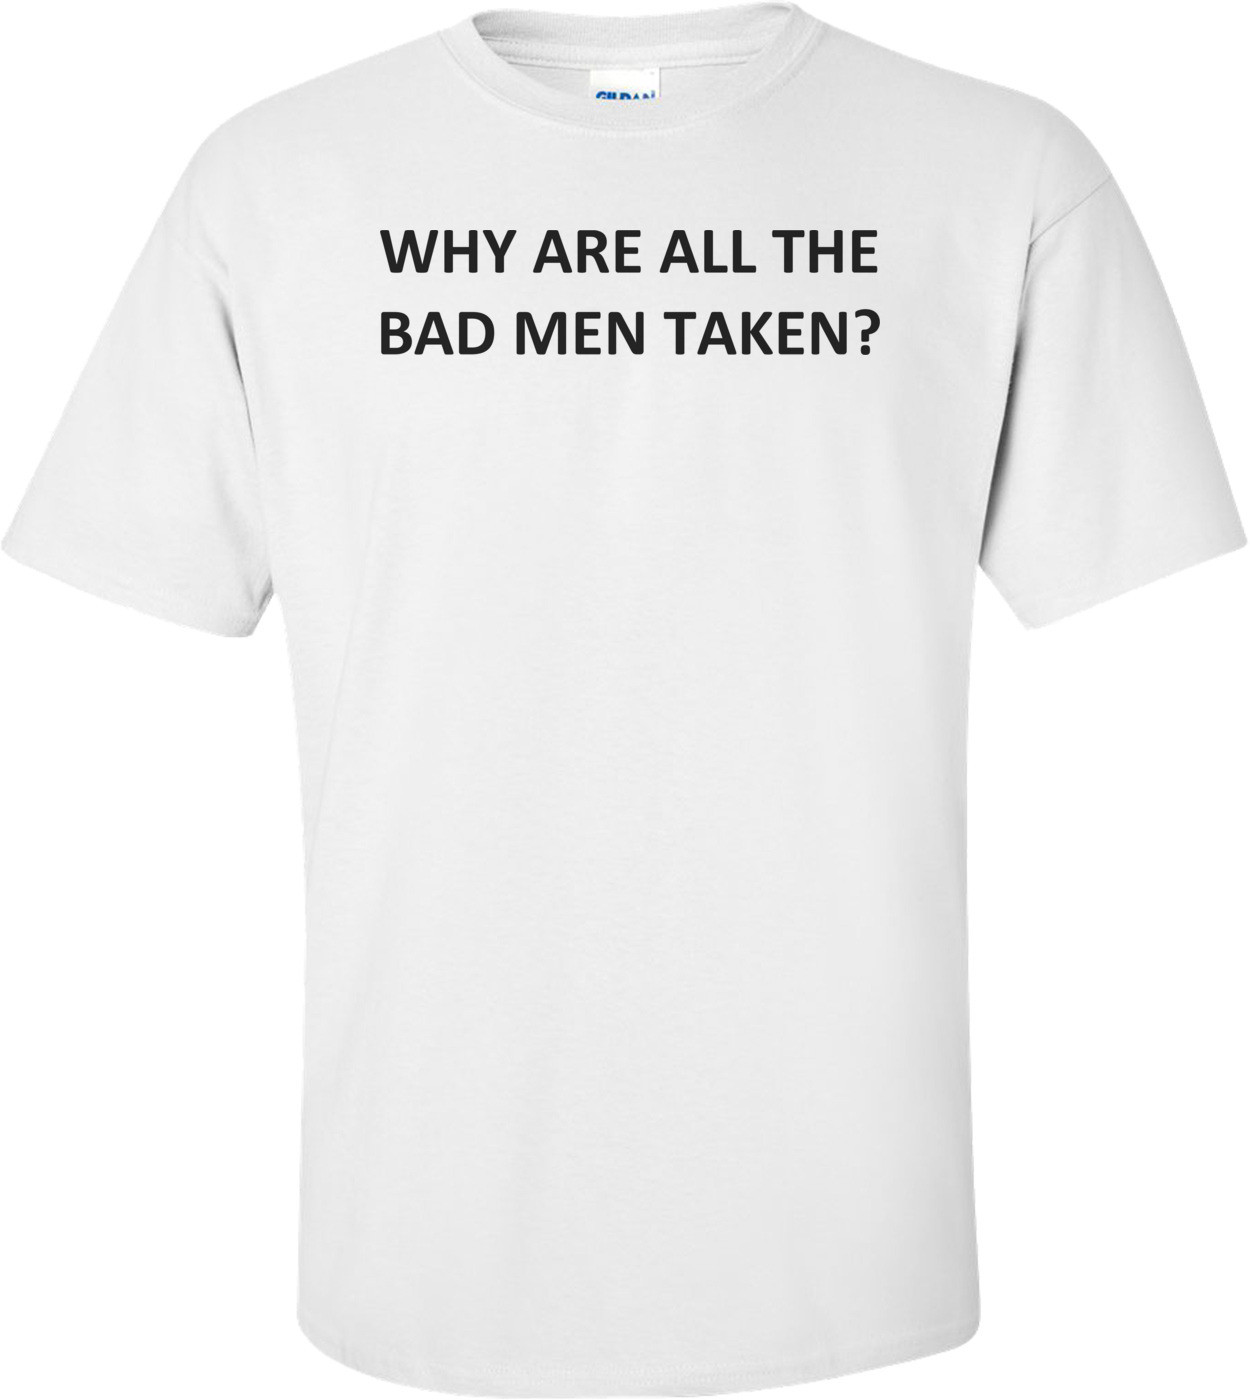 Why Are All The Bad Men Taken? Shirt